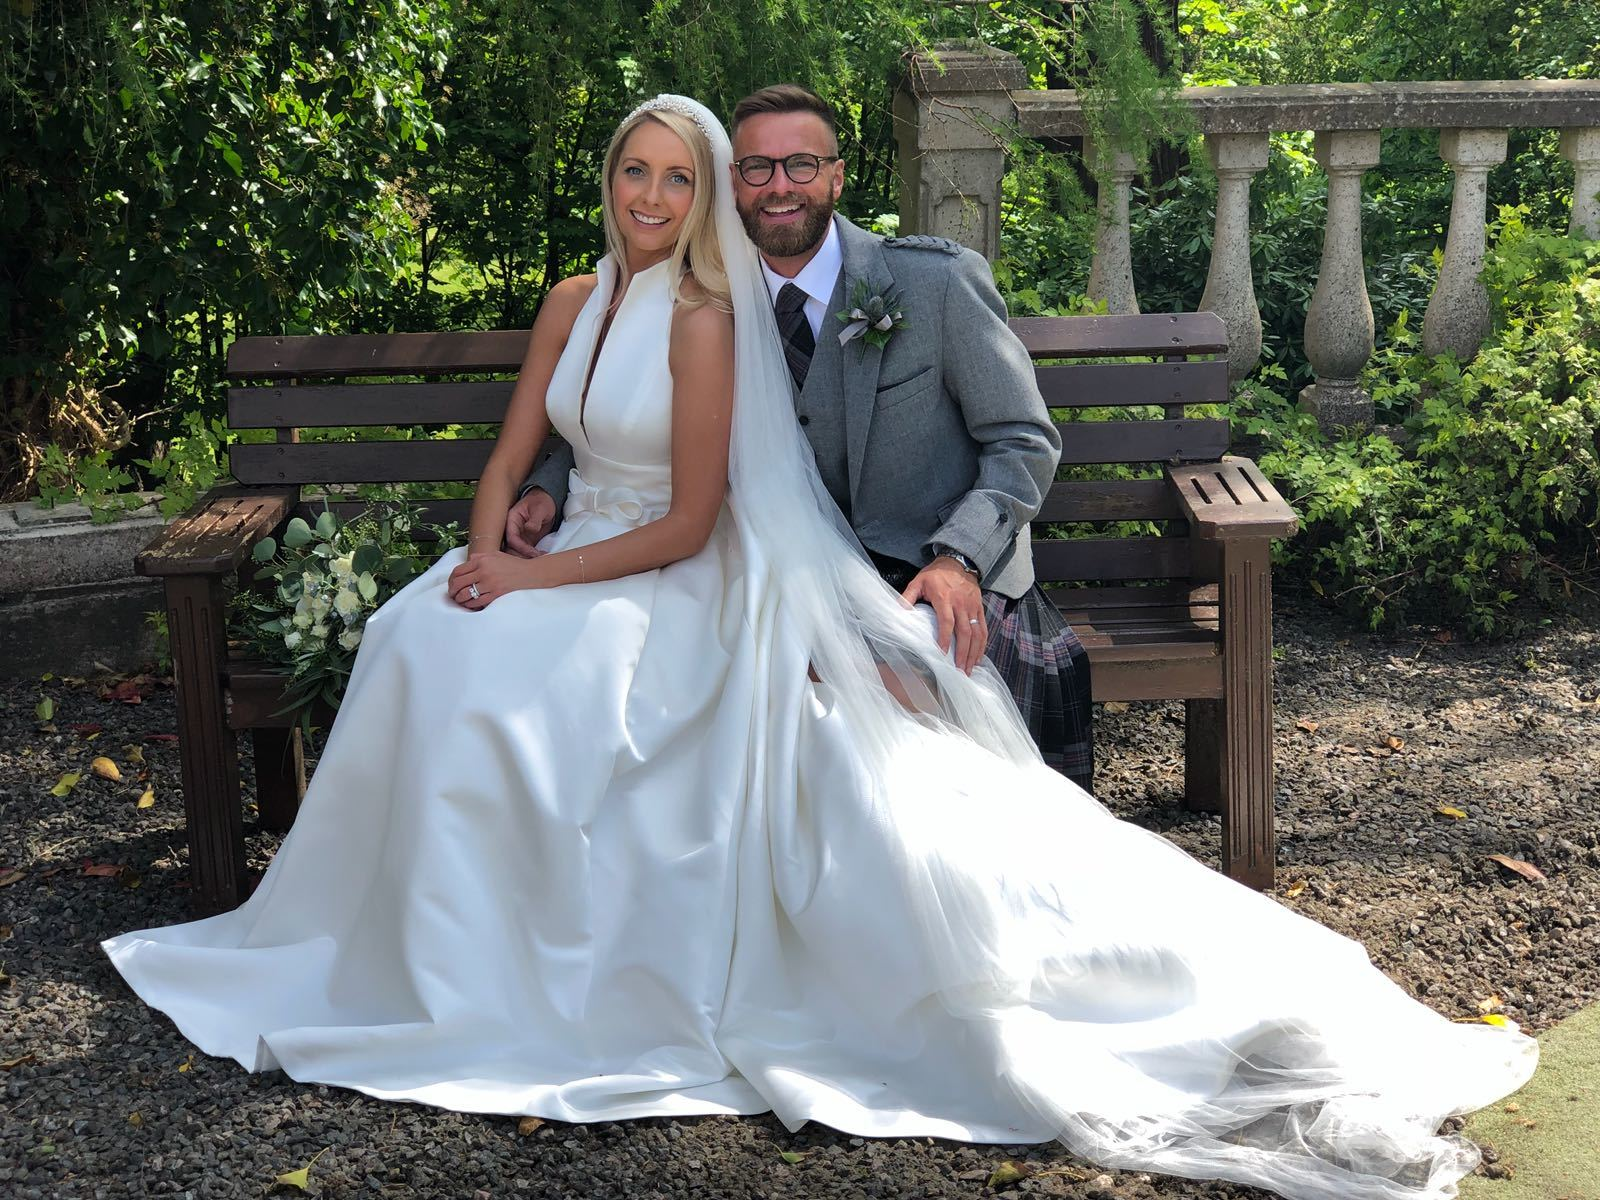 Ria Cable and Mark Petrie married the same day as Prince Harry and Meghan Markle